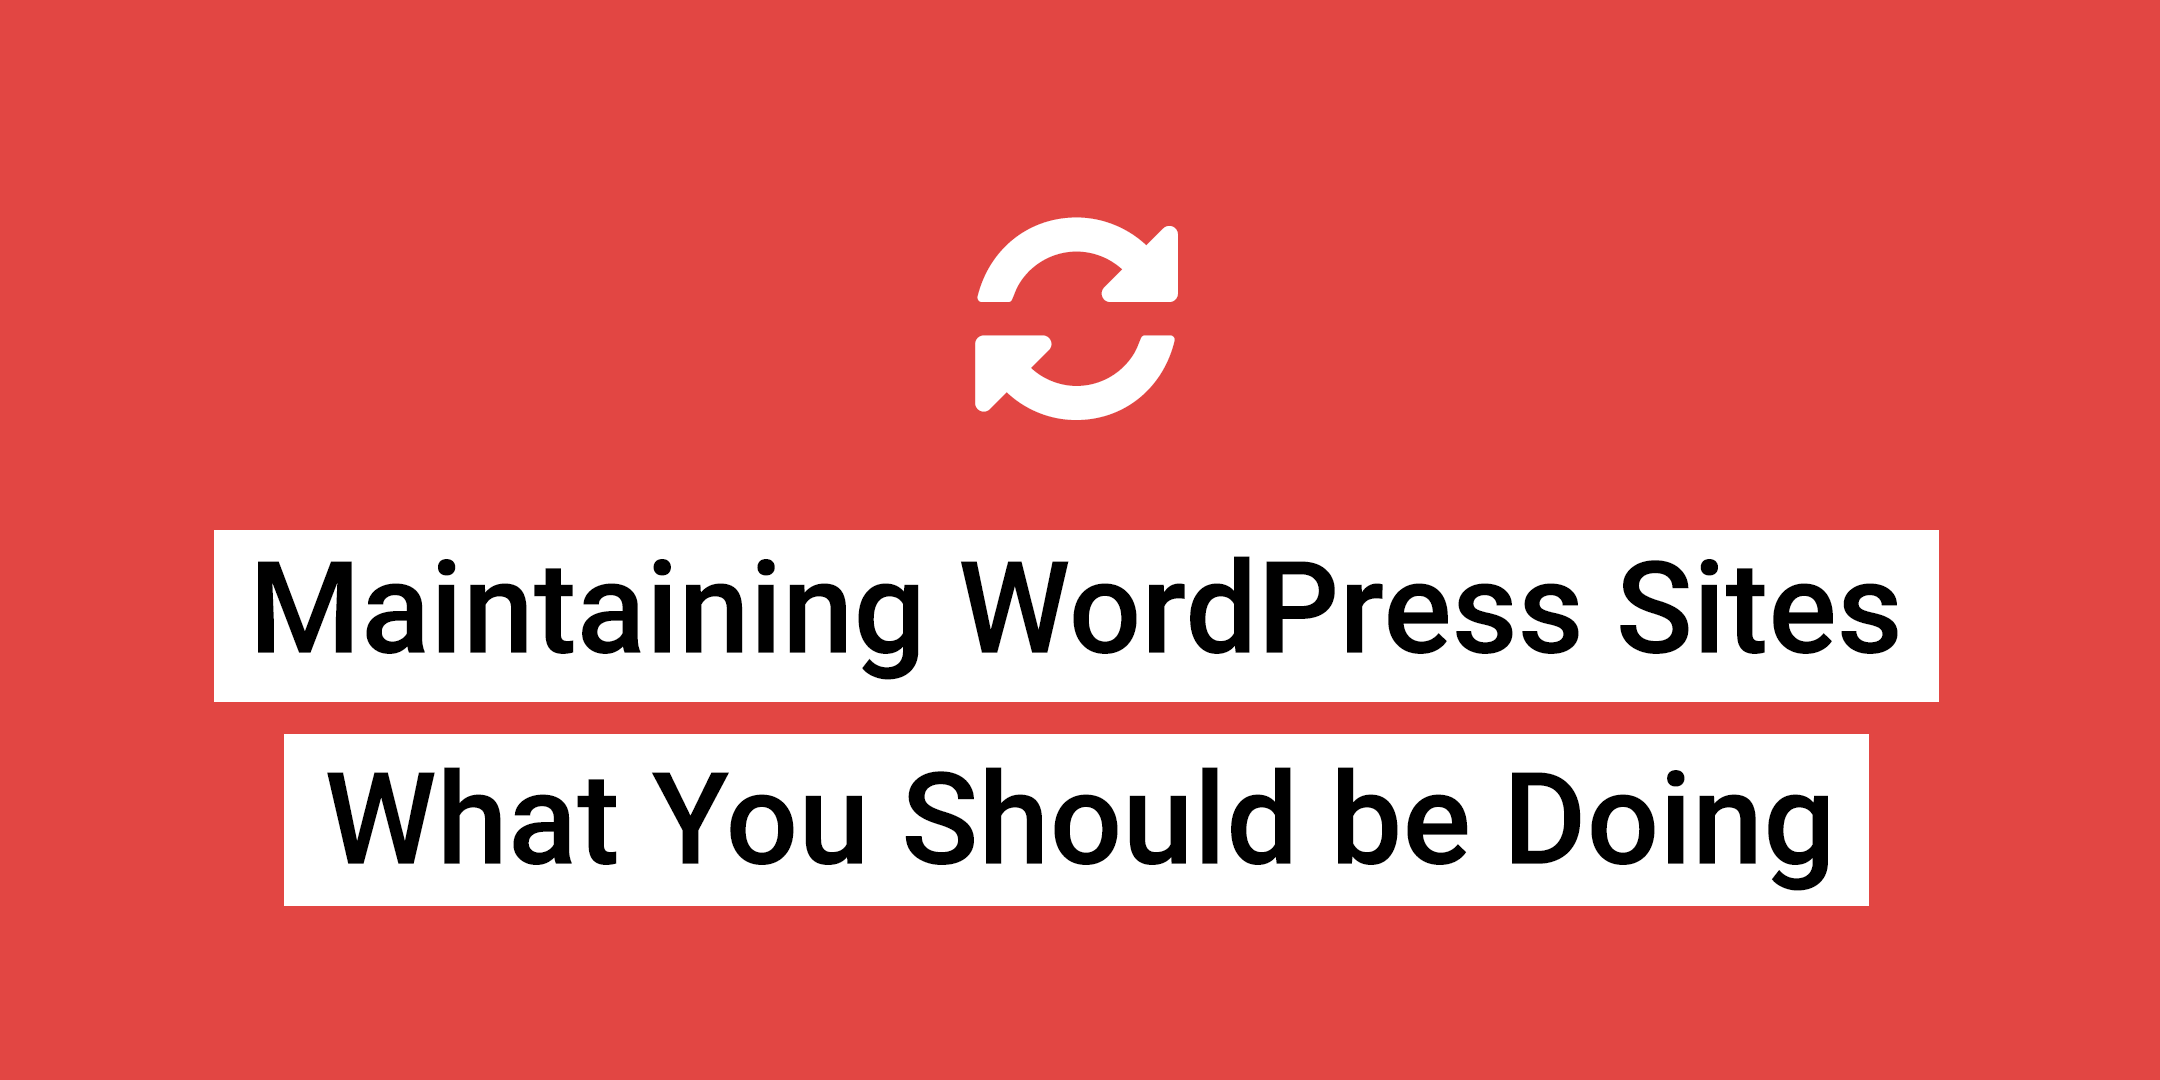 Maintaining WordPress Sites